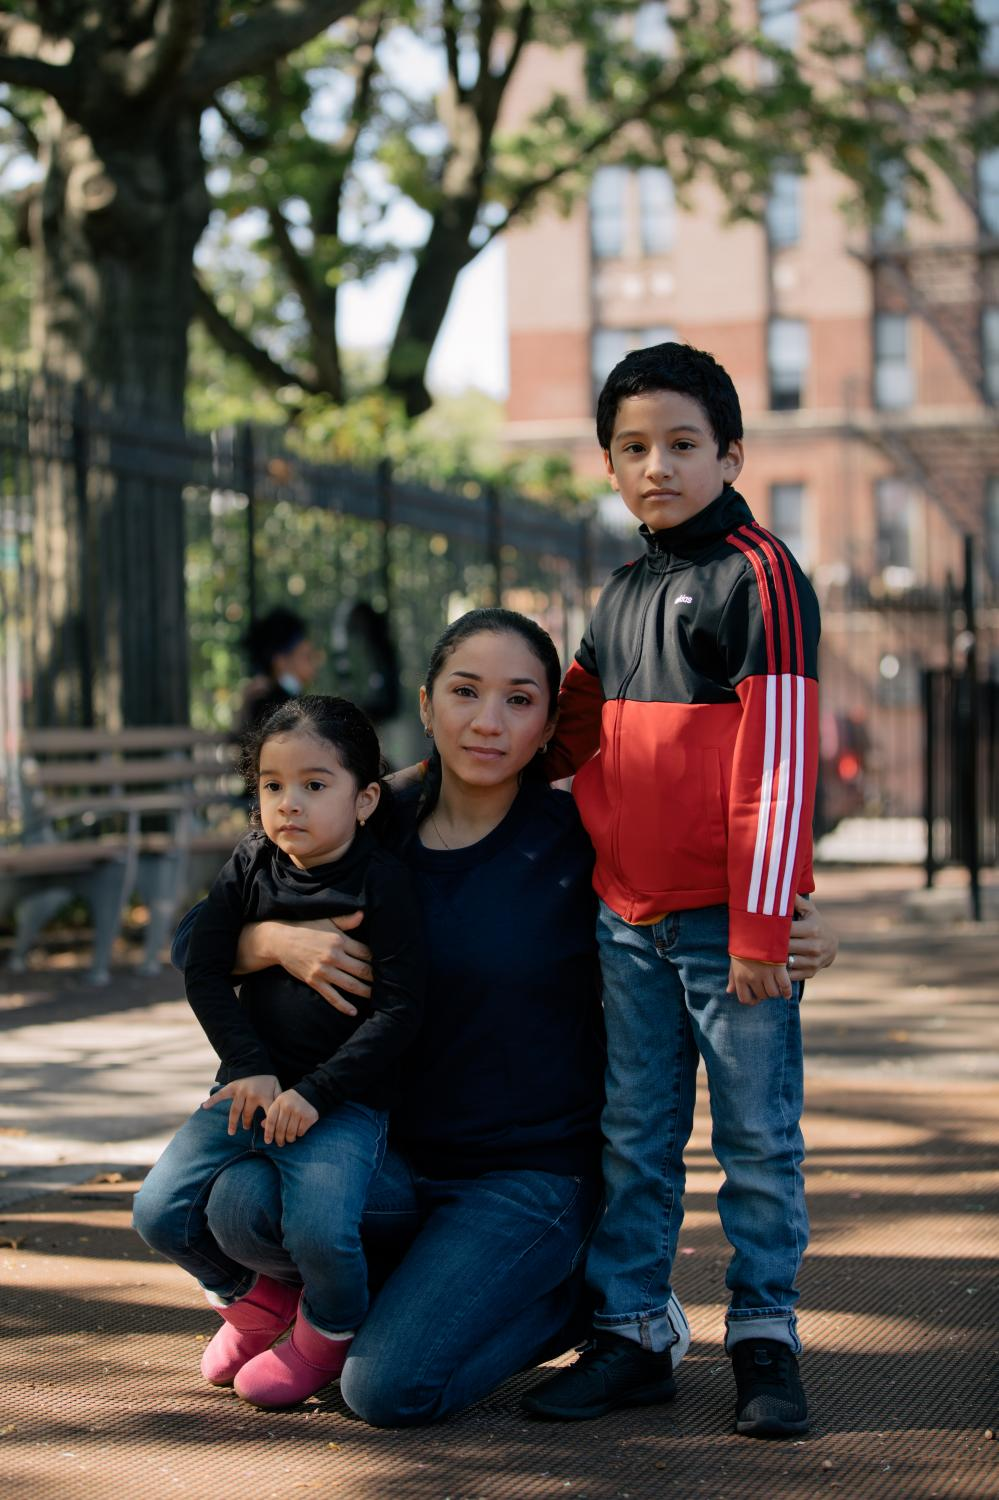 New York City, New York — October 3, 2020: Sylvia Chavez, a parent of two and student at City Tech working toward her associate's degree in construction management, with her two children, with her son Noah Chavez-Giler, 9, and her daughter Allison Chavez-Giler, 3, in Parque de los Niños in the Bronx borough of New York City. As students across the county begin the challenging process of returning to school, many are still hesitant to return to in-class gatherings due to the concern of COVID-19's growing rate of transmission. CREDIT: José A. Alvarado Jr. for The New York Times